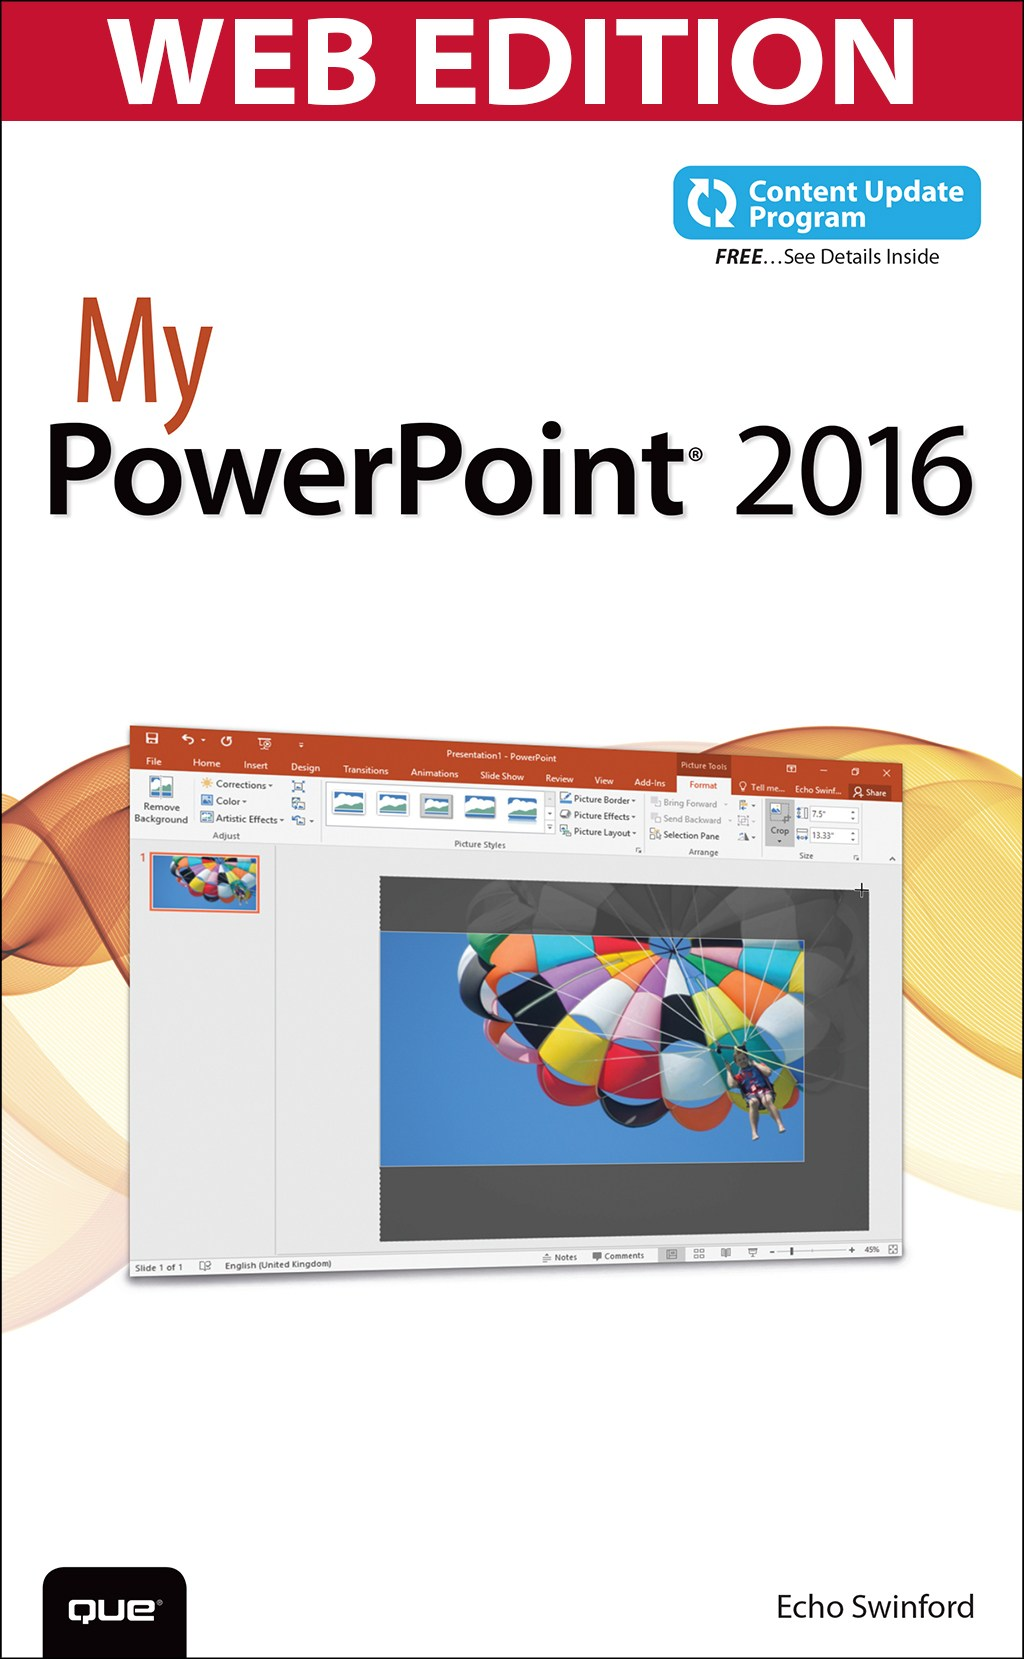 My PowerPoint 2016 (Web Edition and Content Update Program)